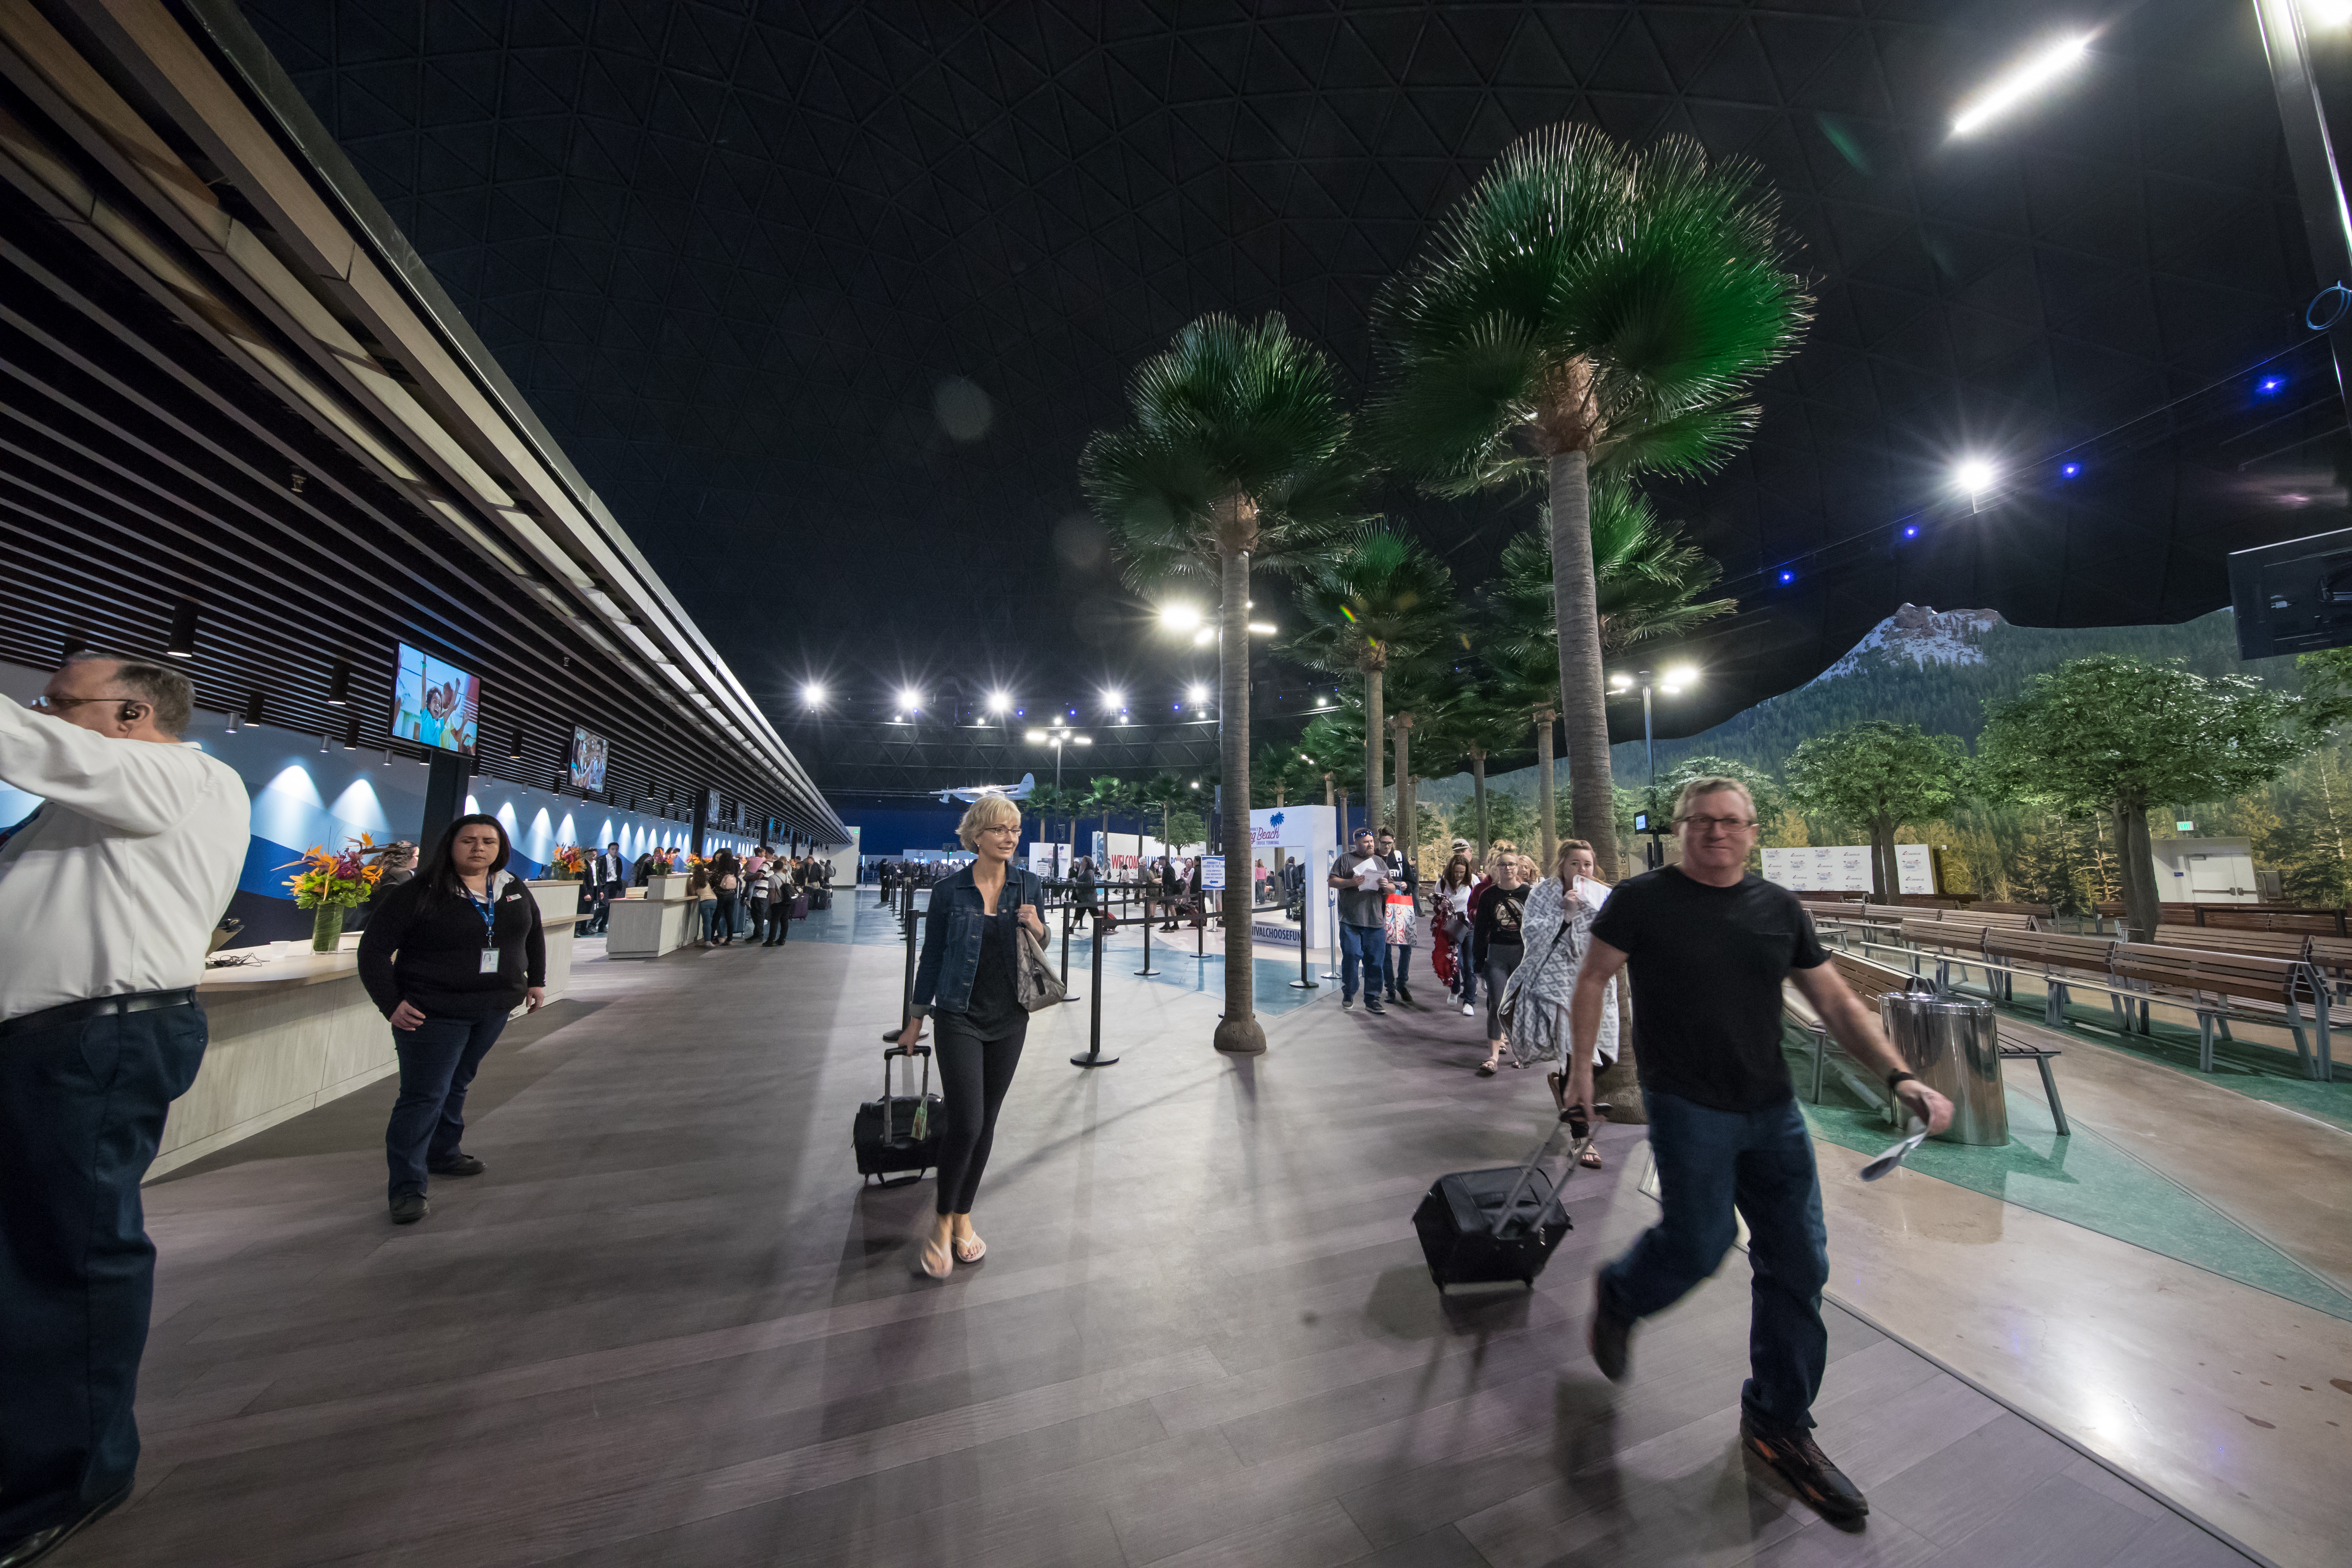 Carnival Cruise Line's Long Beach Facility Named Most Improved Cruise Terminal in Porthole Cruise Magazine's Editor-in-Chief Awards